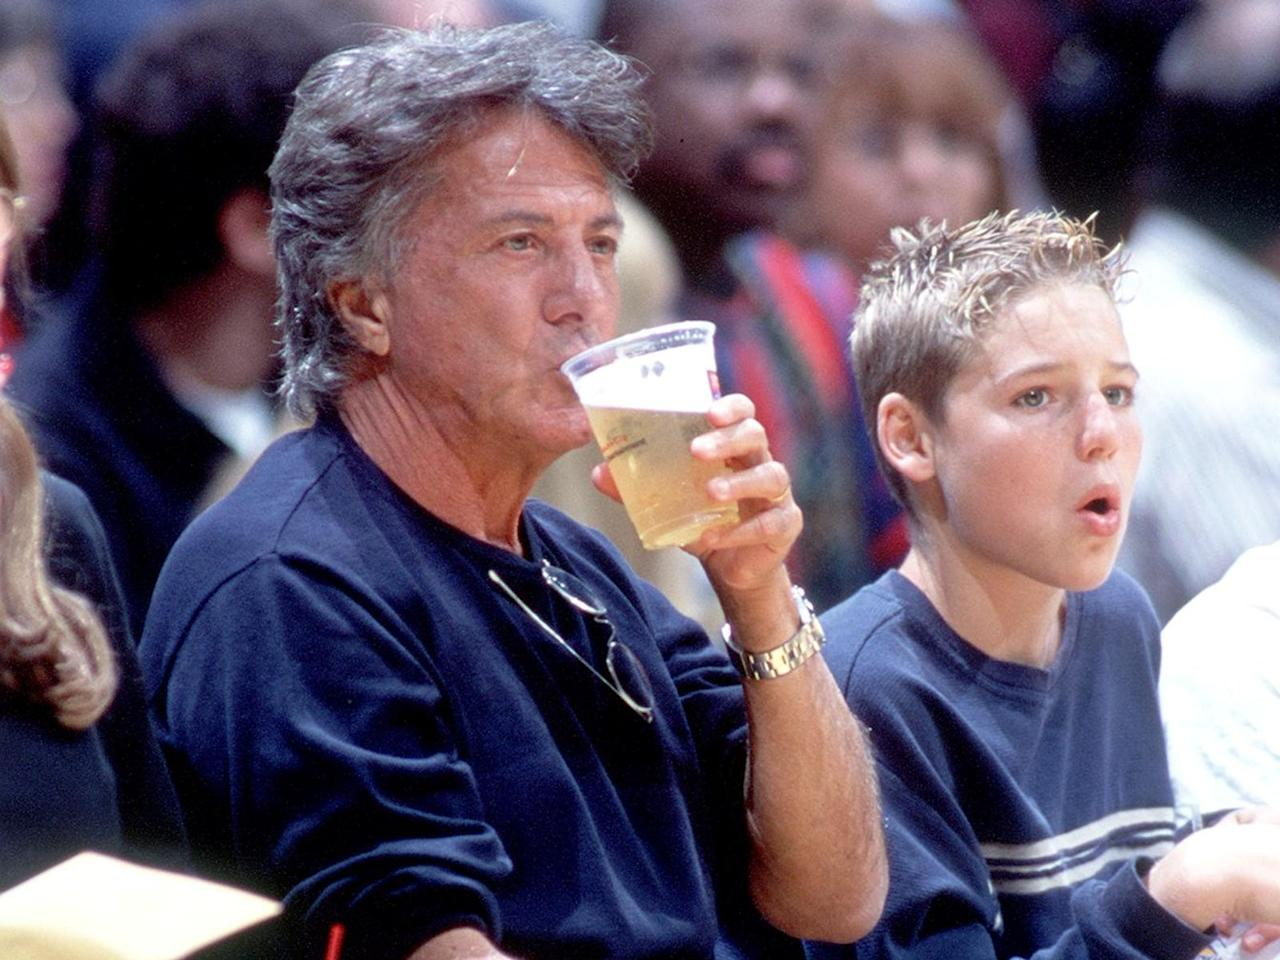 Dustin Hoffman 1999 bei einem Basketballspiel im Staples Center in Los Angeles.